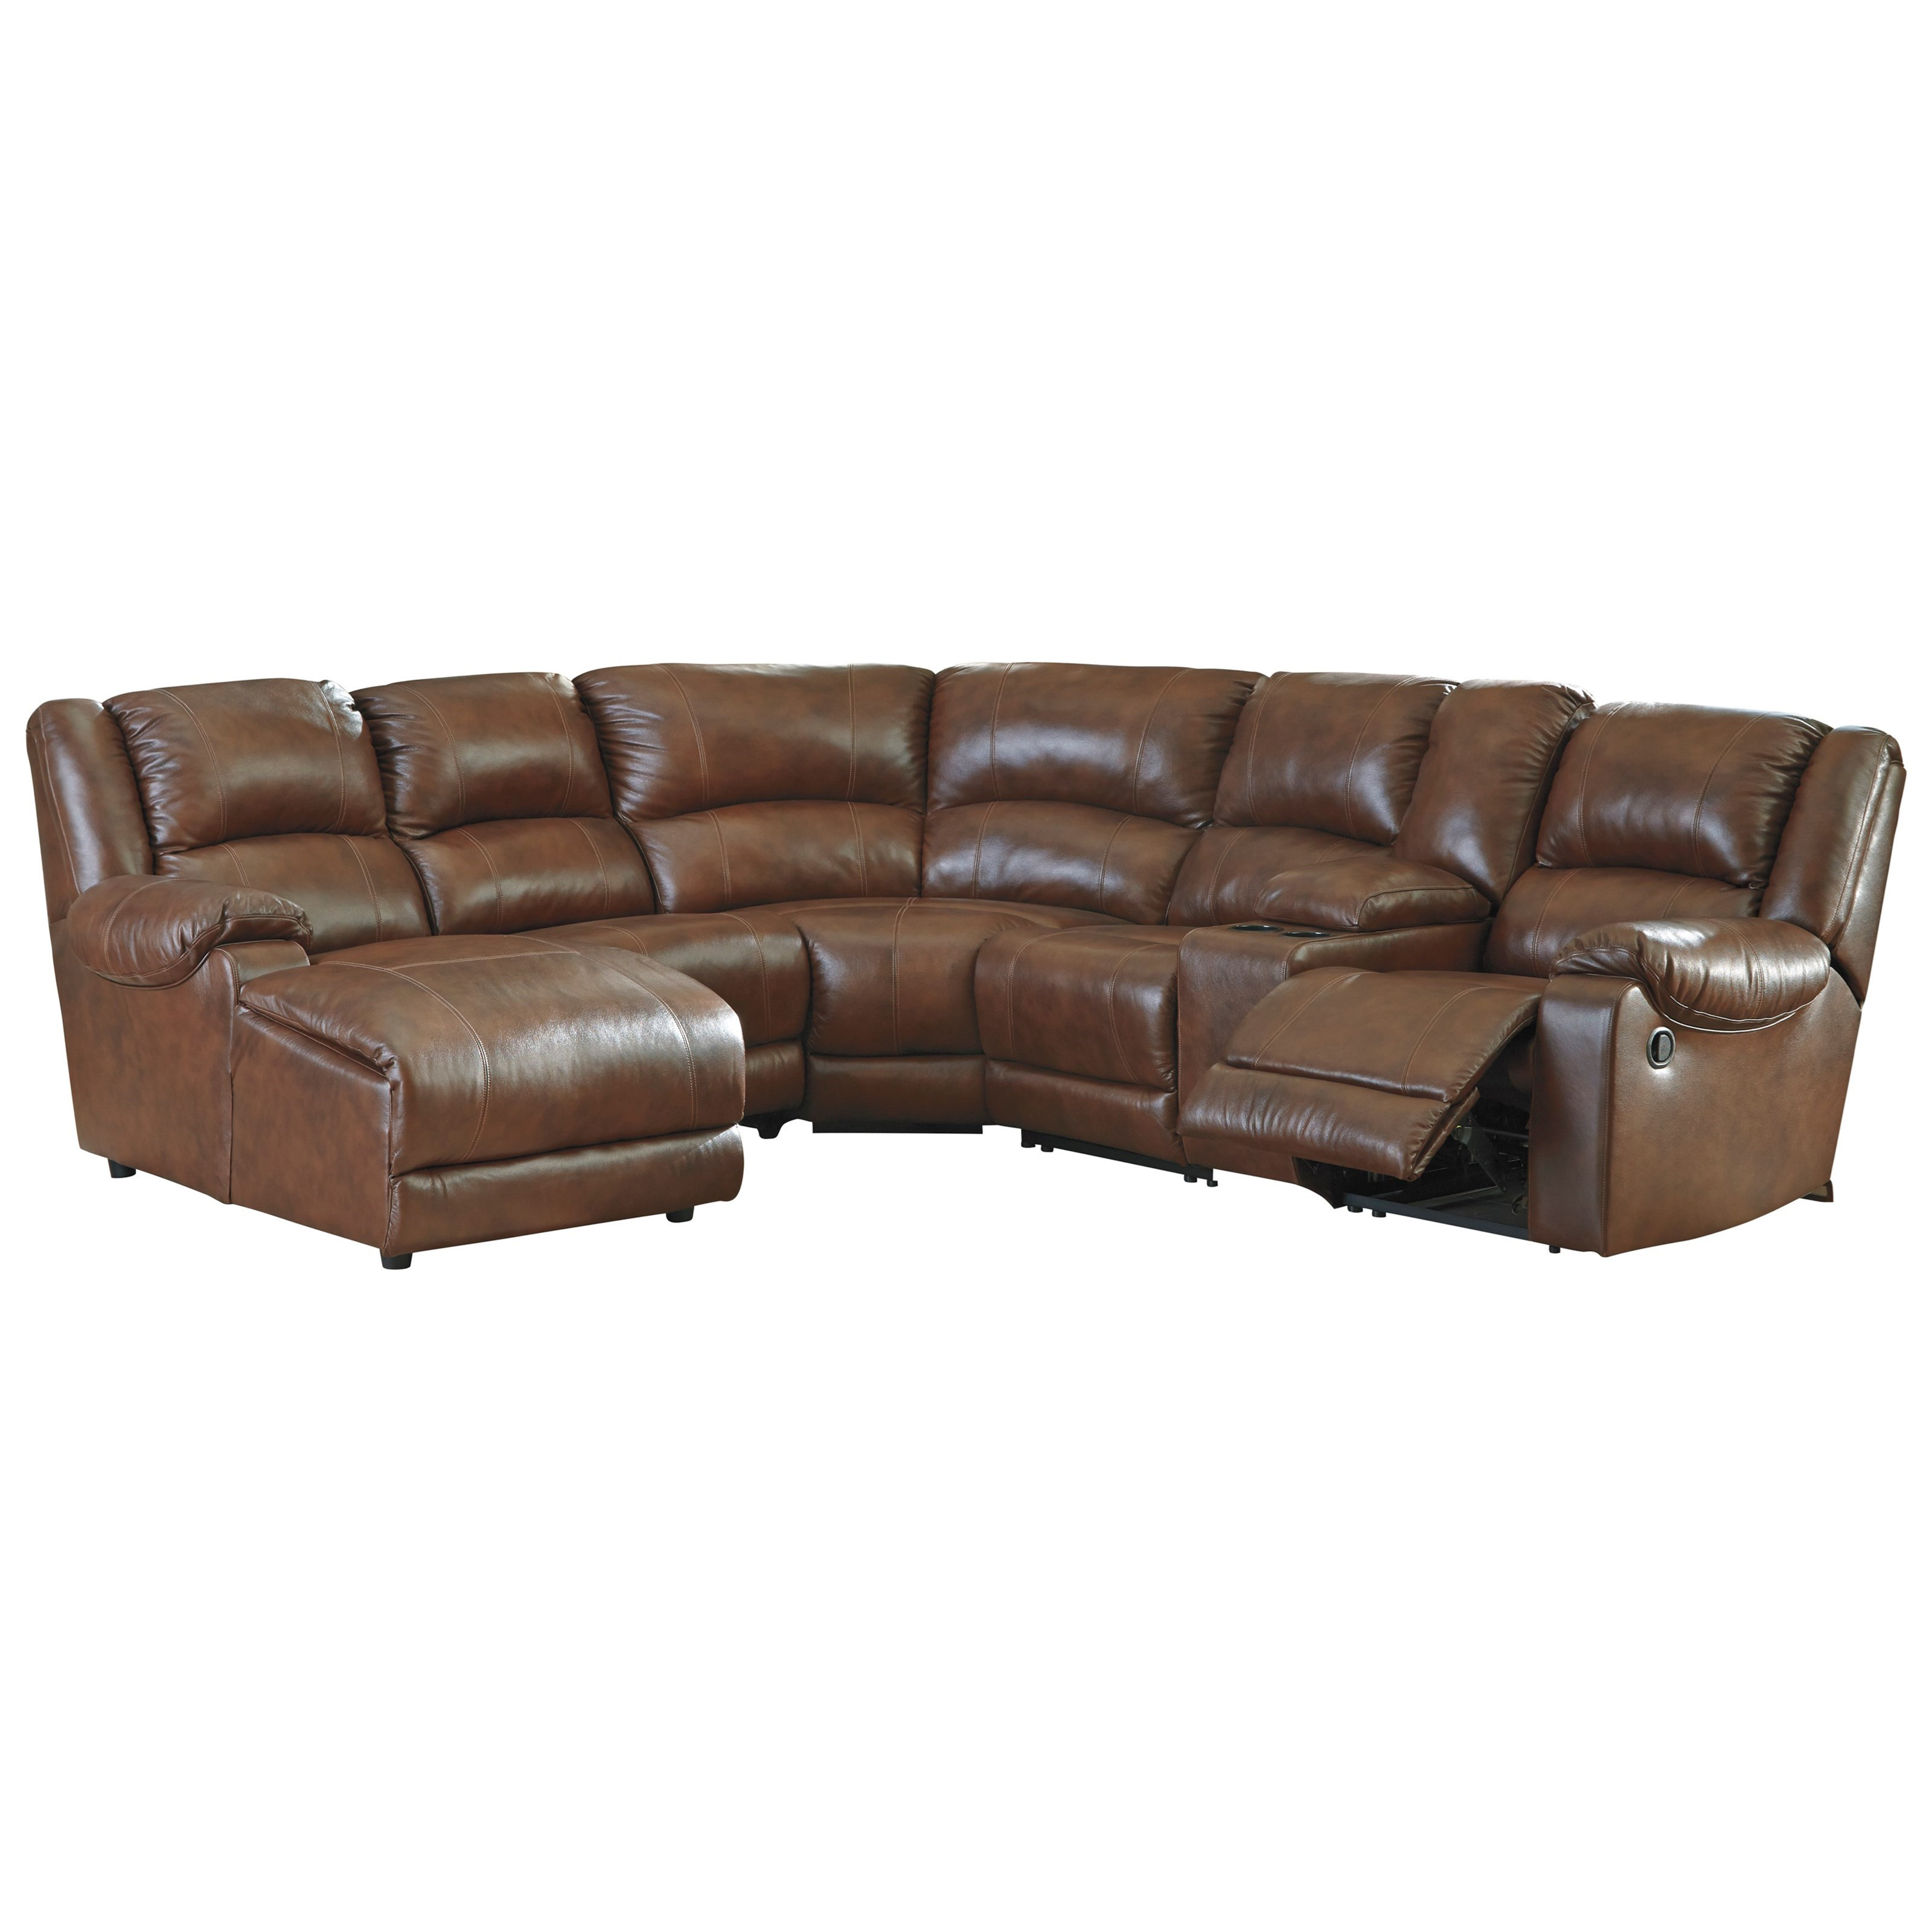 Signature design by ashley billwedge leather match reclining sectional with left chaise - Leather reclining sectional with chaise ...